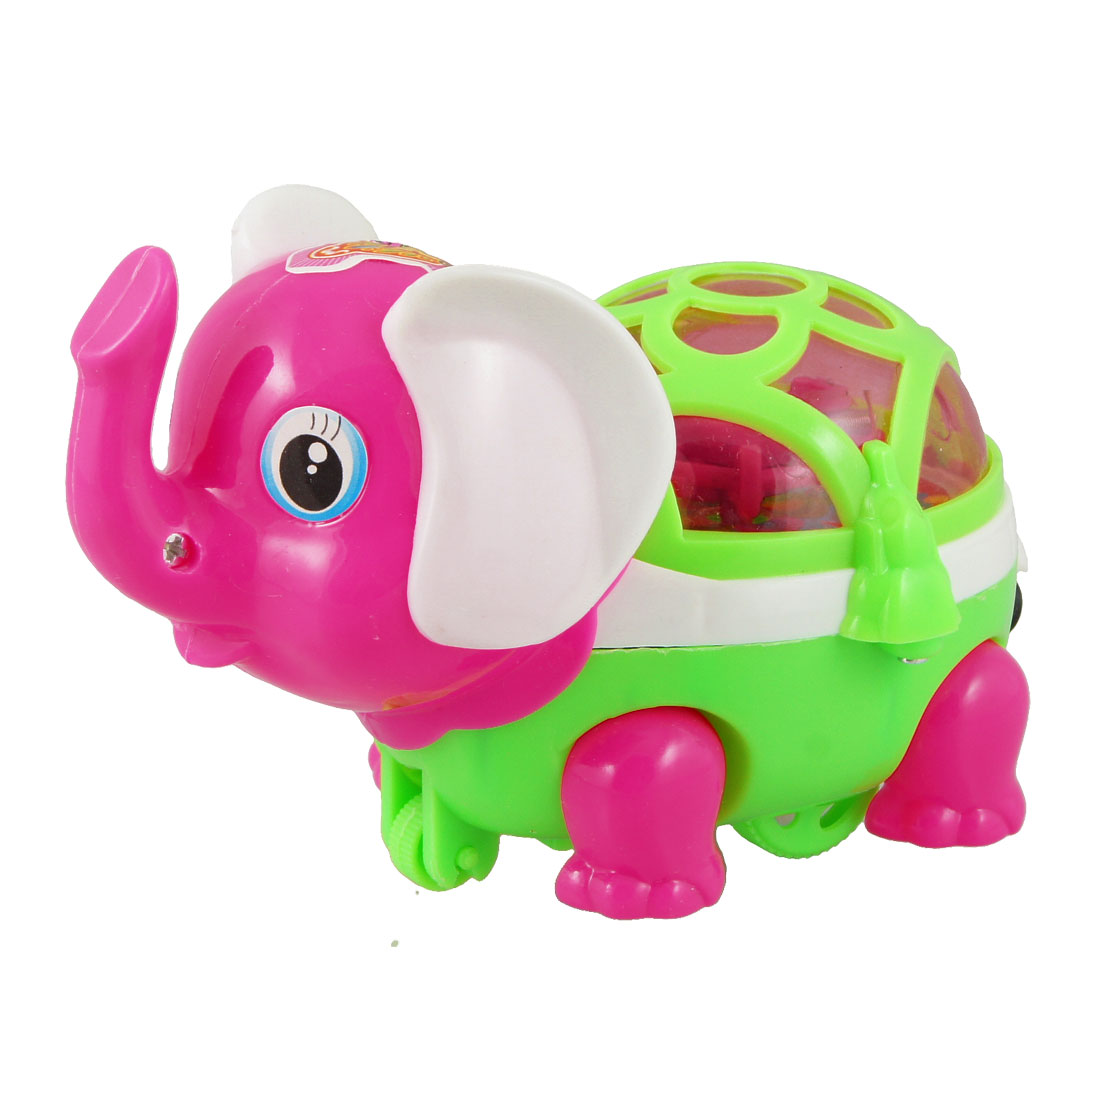 Red Light Green Pink Cartoon Elephant Design Pull String Toy for Children